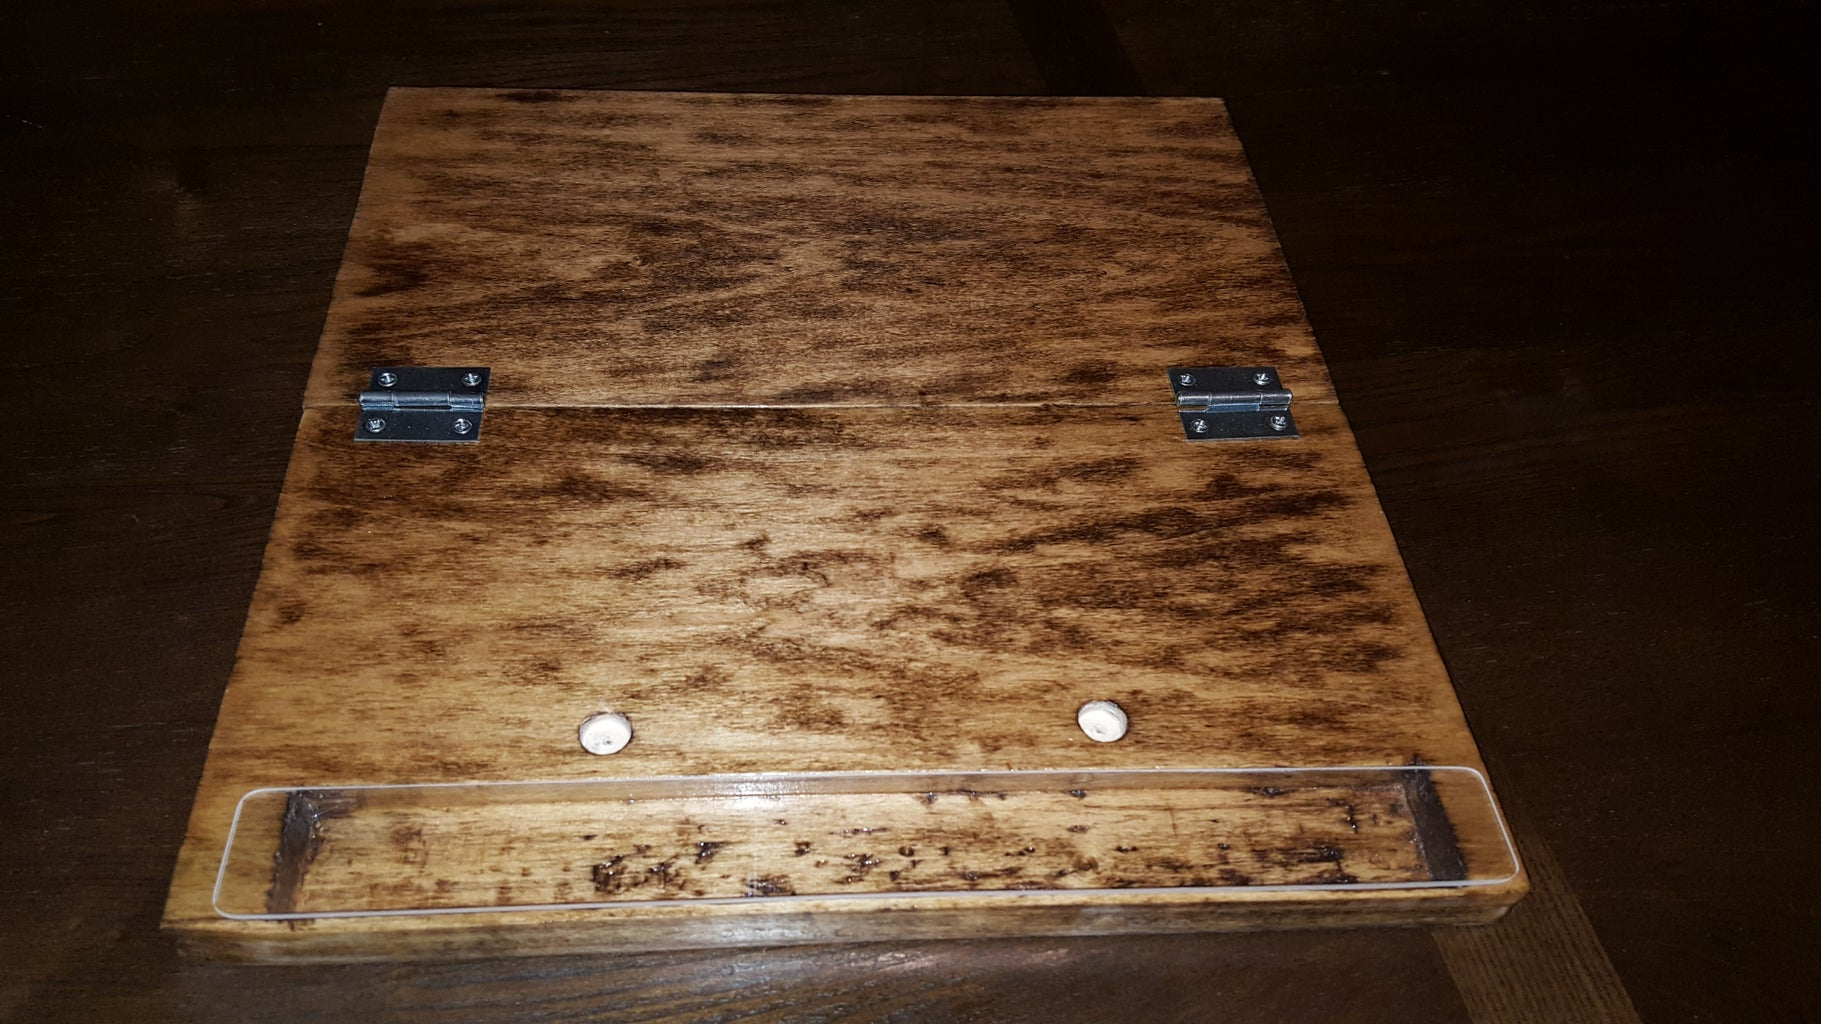 Hinges, Storage Cover, and Feet!